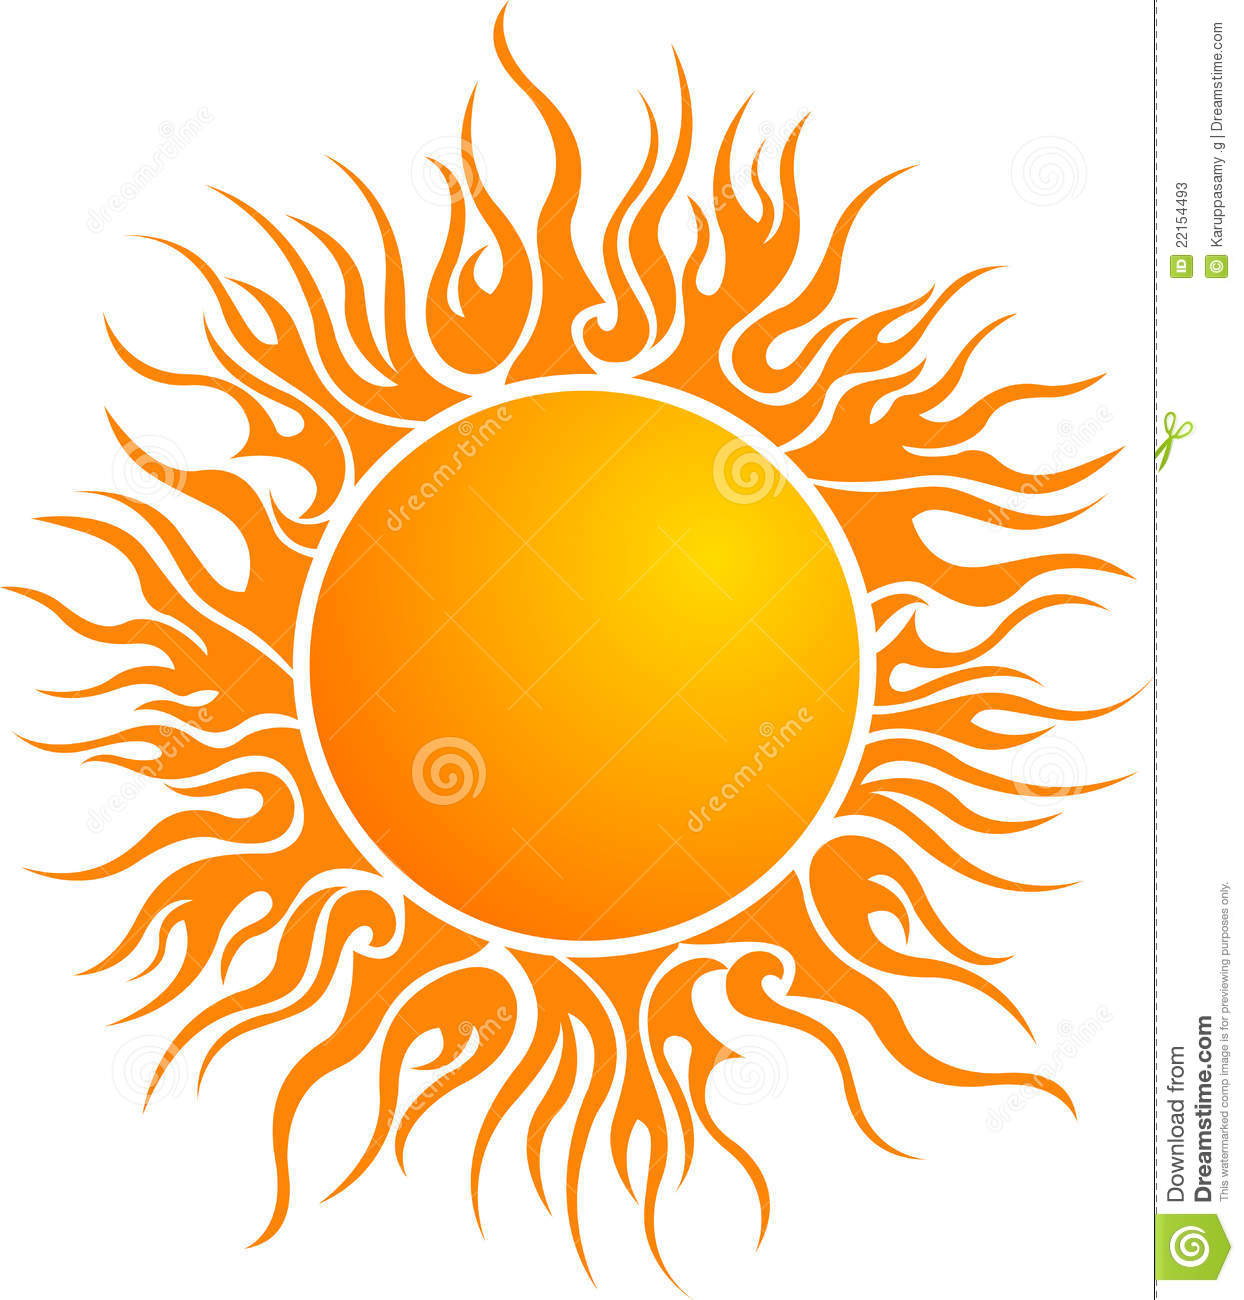 Sunrise Logo Clip Art Images & Pictures - Becuo